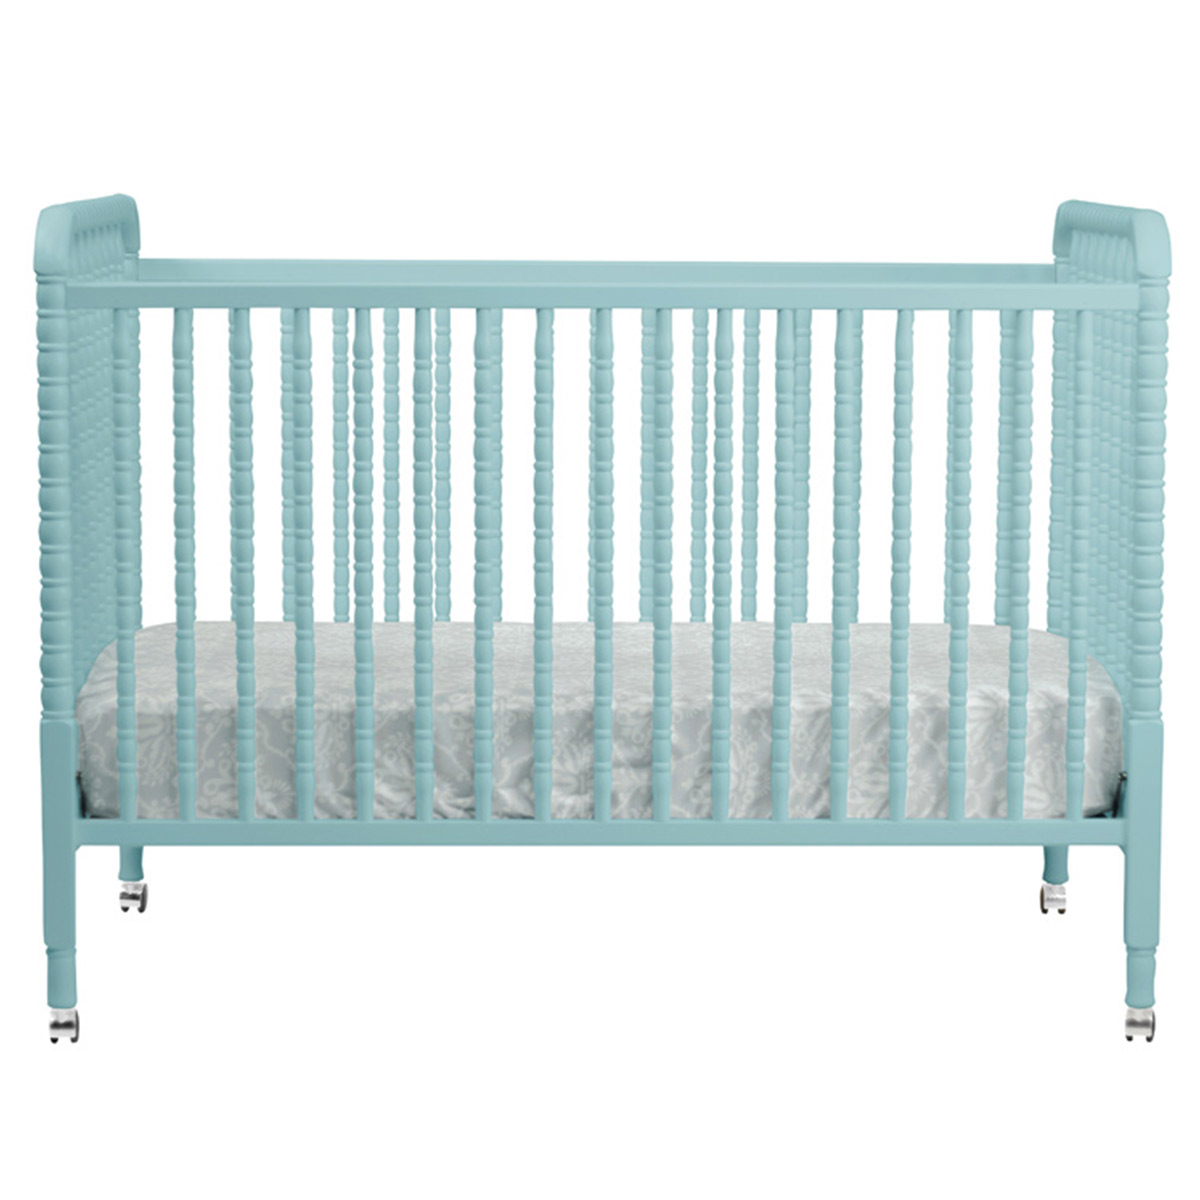 comforting side drop furniture sleep your cribs jenny lind bedroom davinci crib bed reviews baby adult with